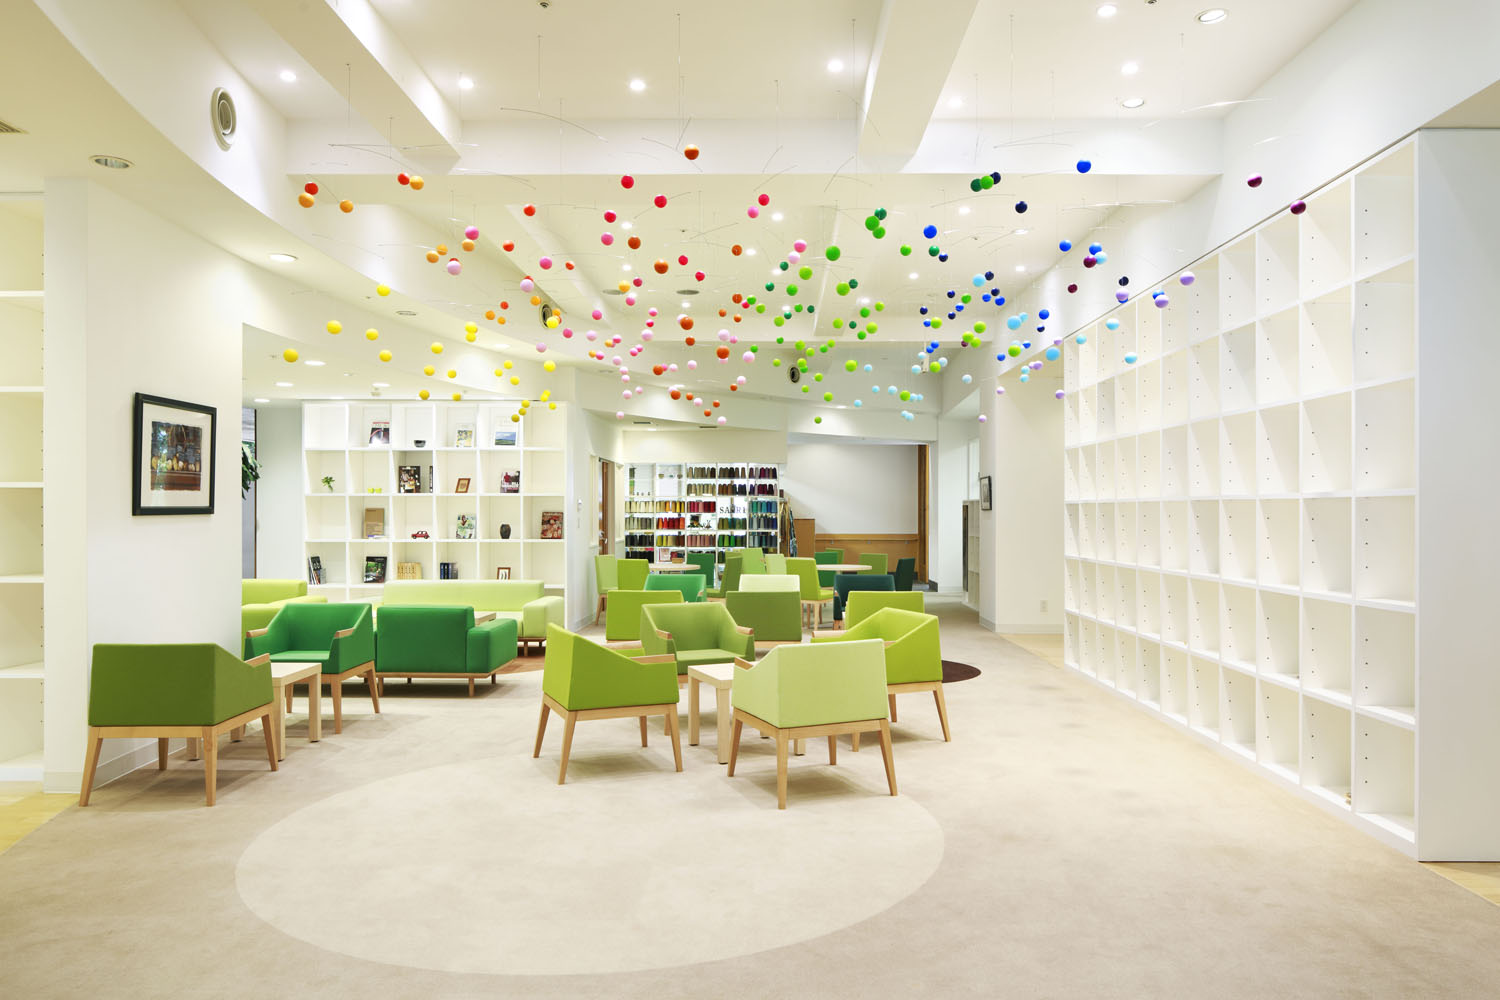 retirement home design. shinjuen nursing home emmanuelle moureaux architecture  design space